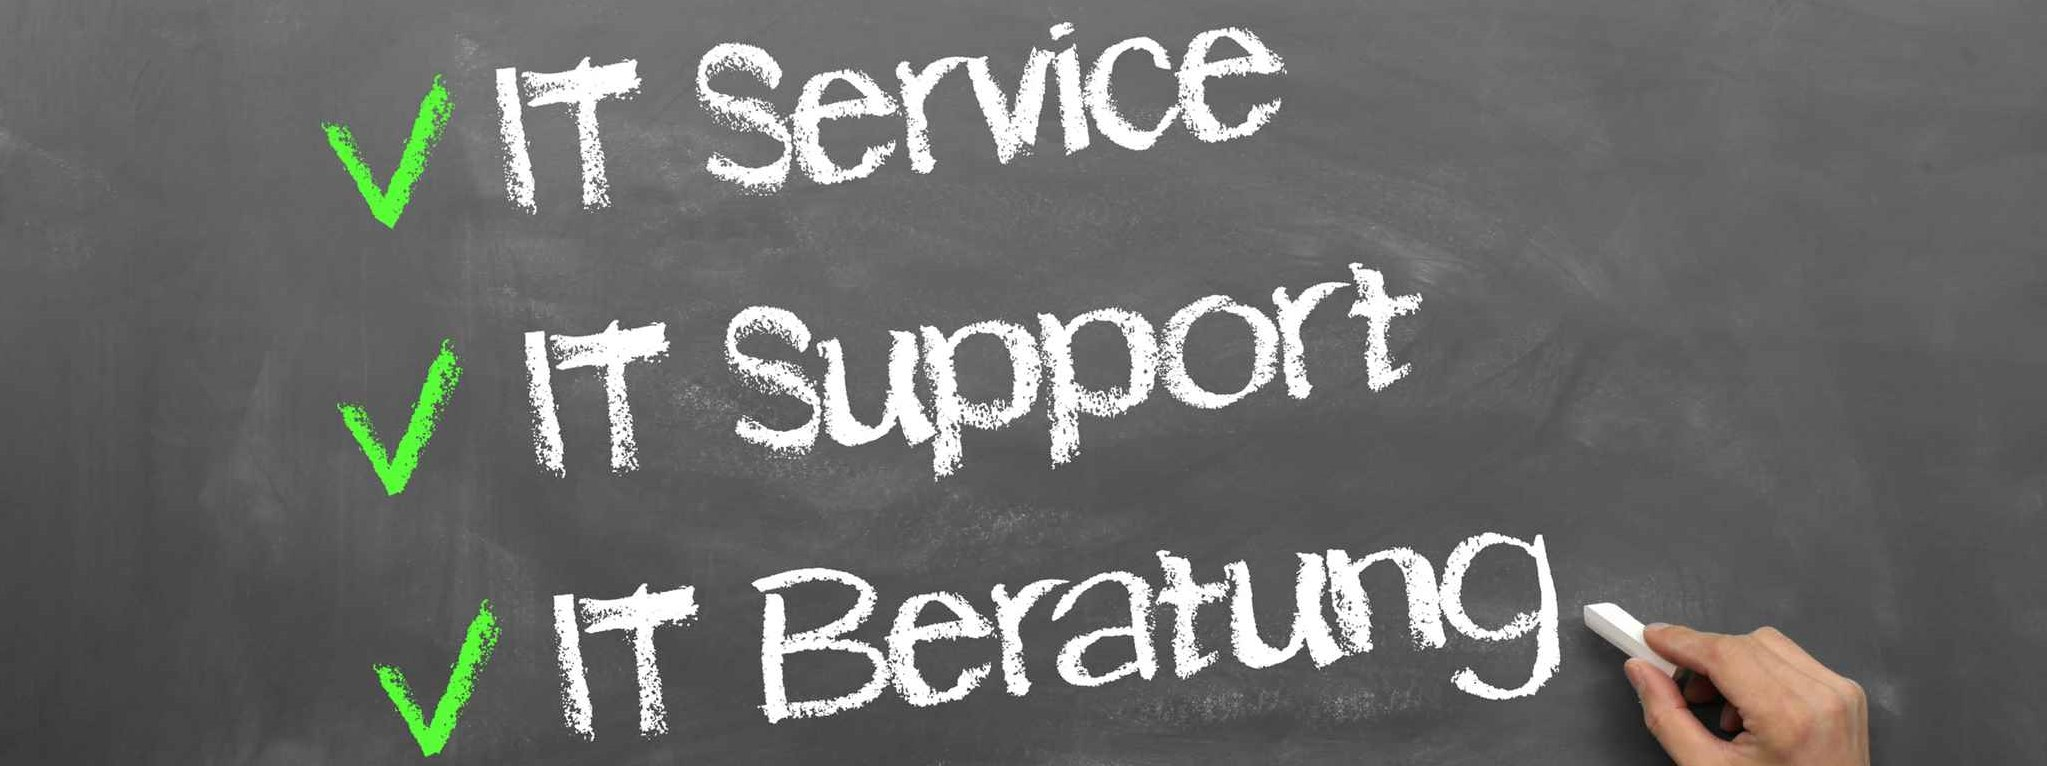 IT-Beratung-Support